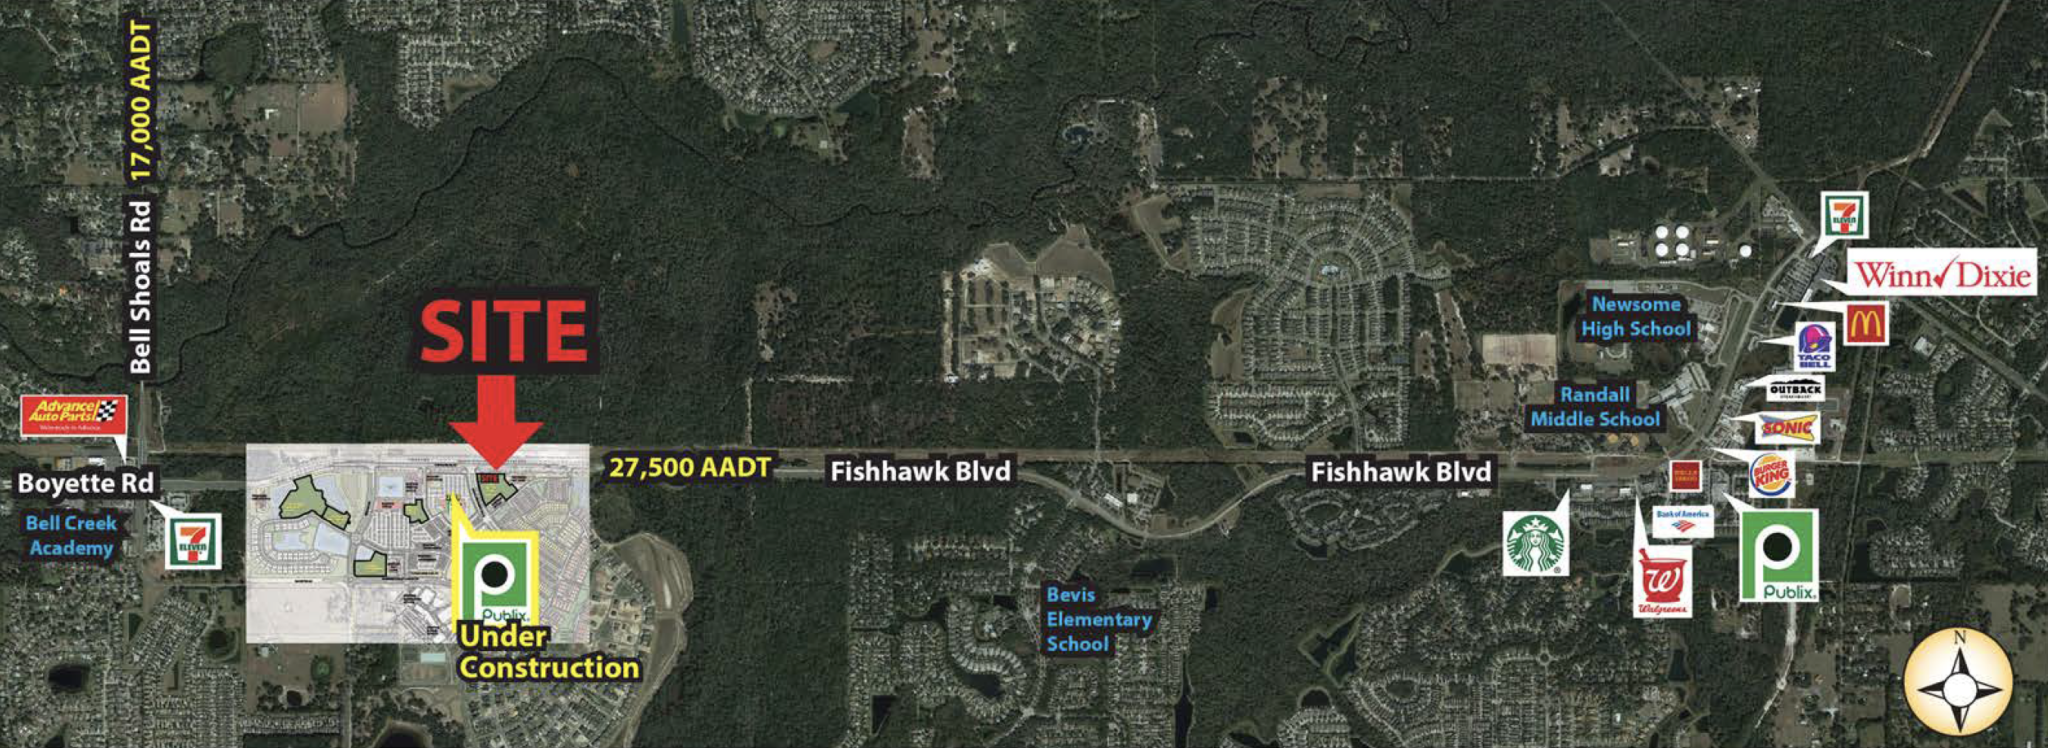 FishHawk-Ranch-Real-Estate-Development-1